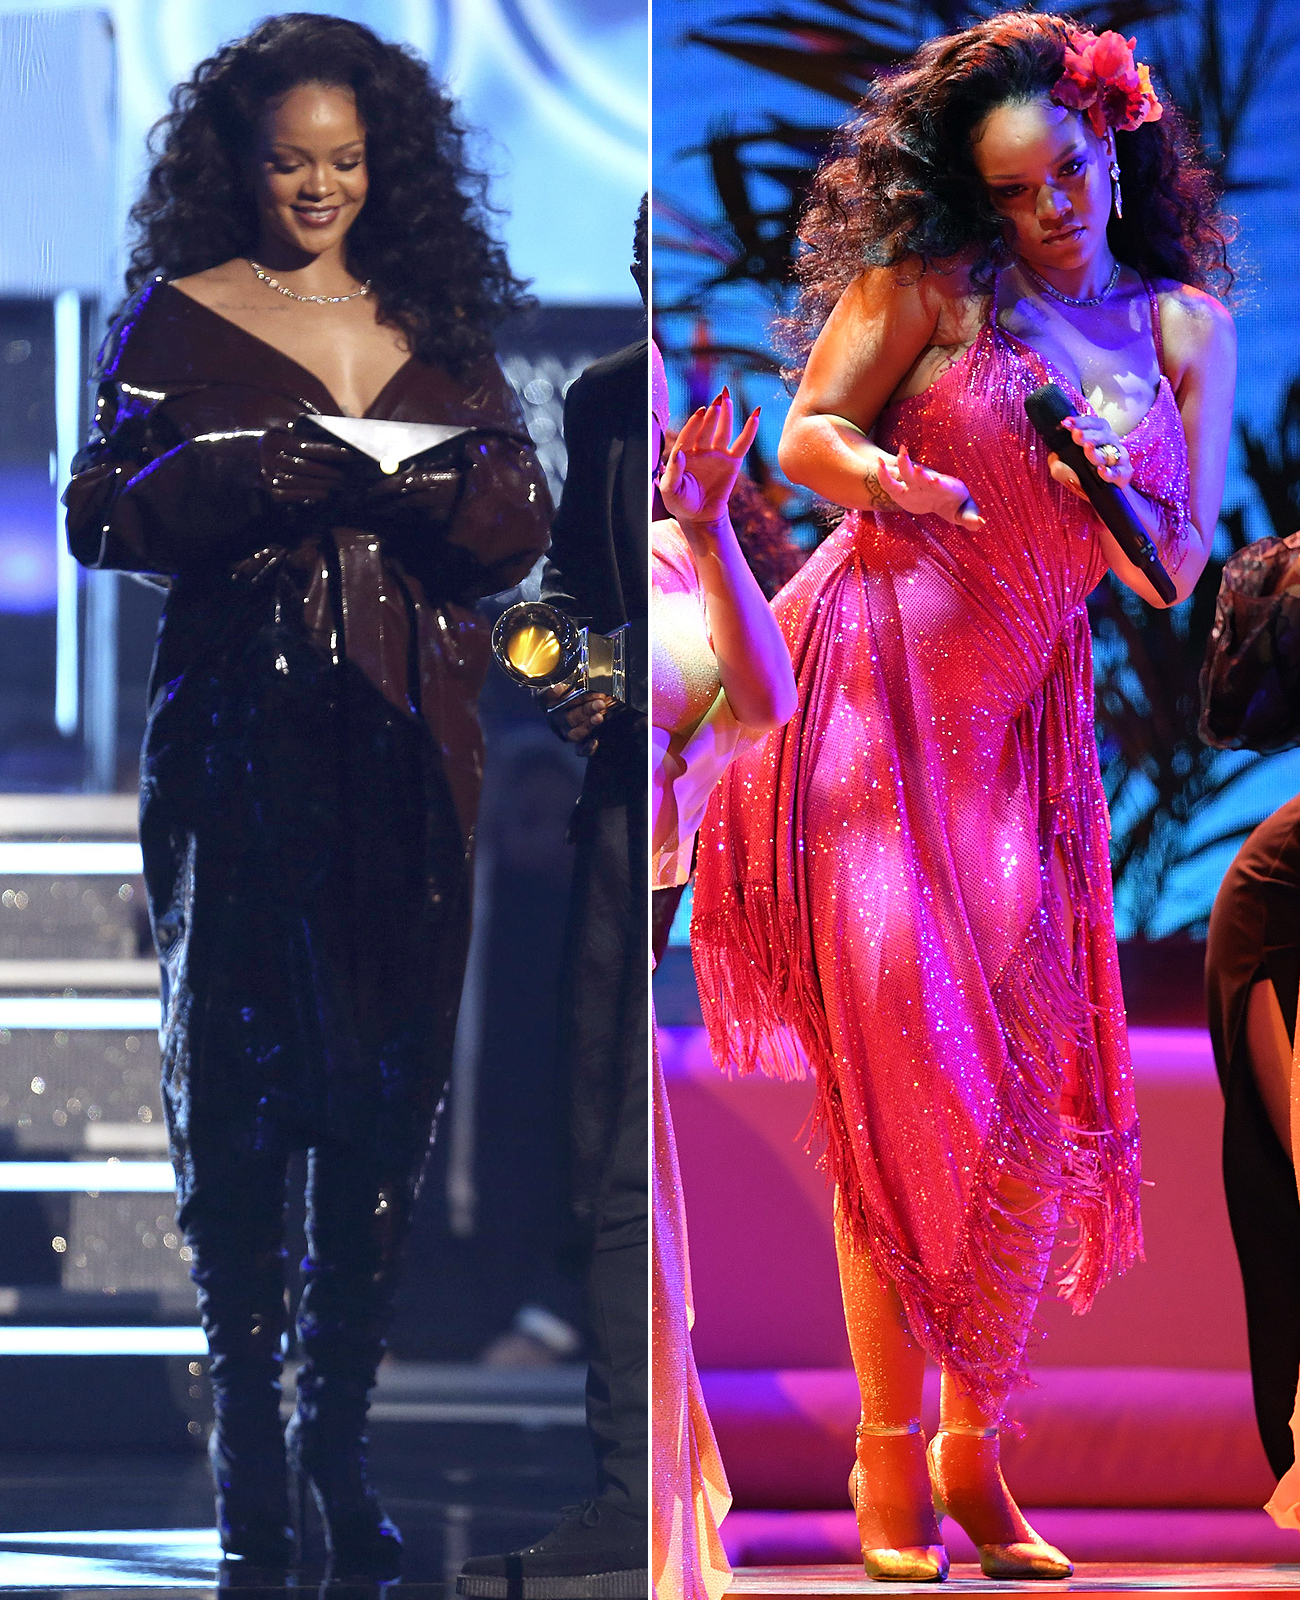 outfit-changes-rihanna